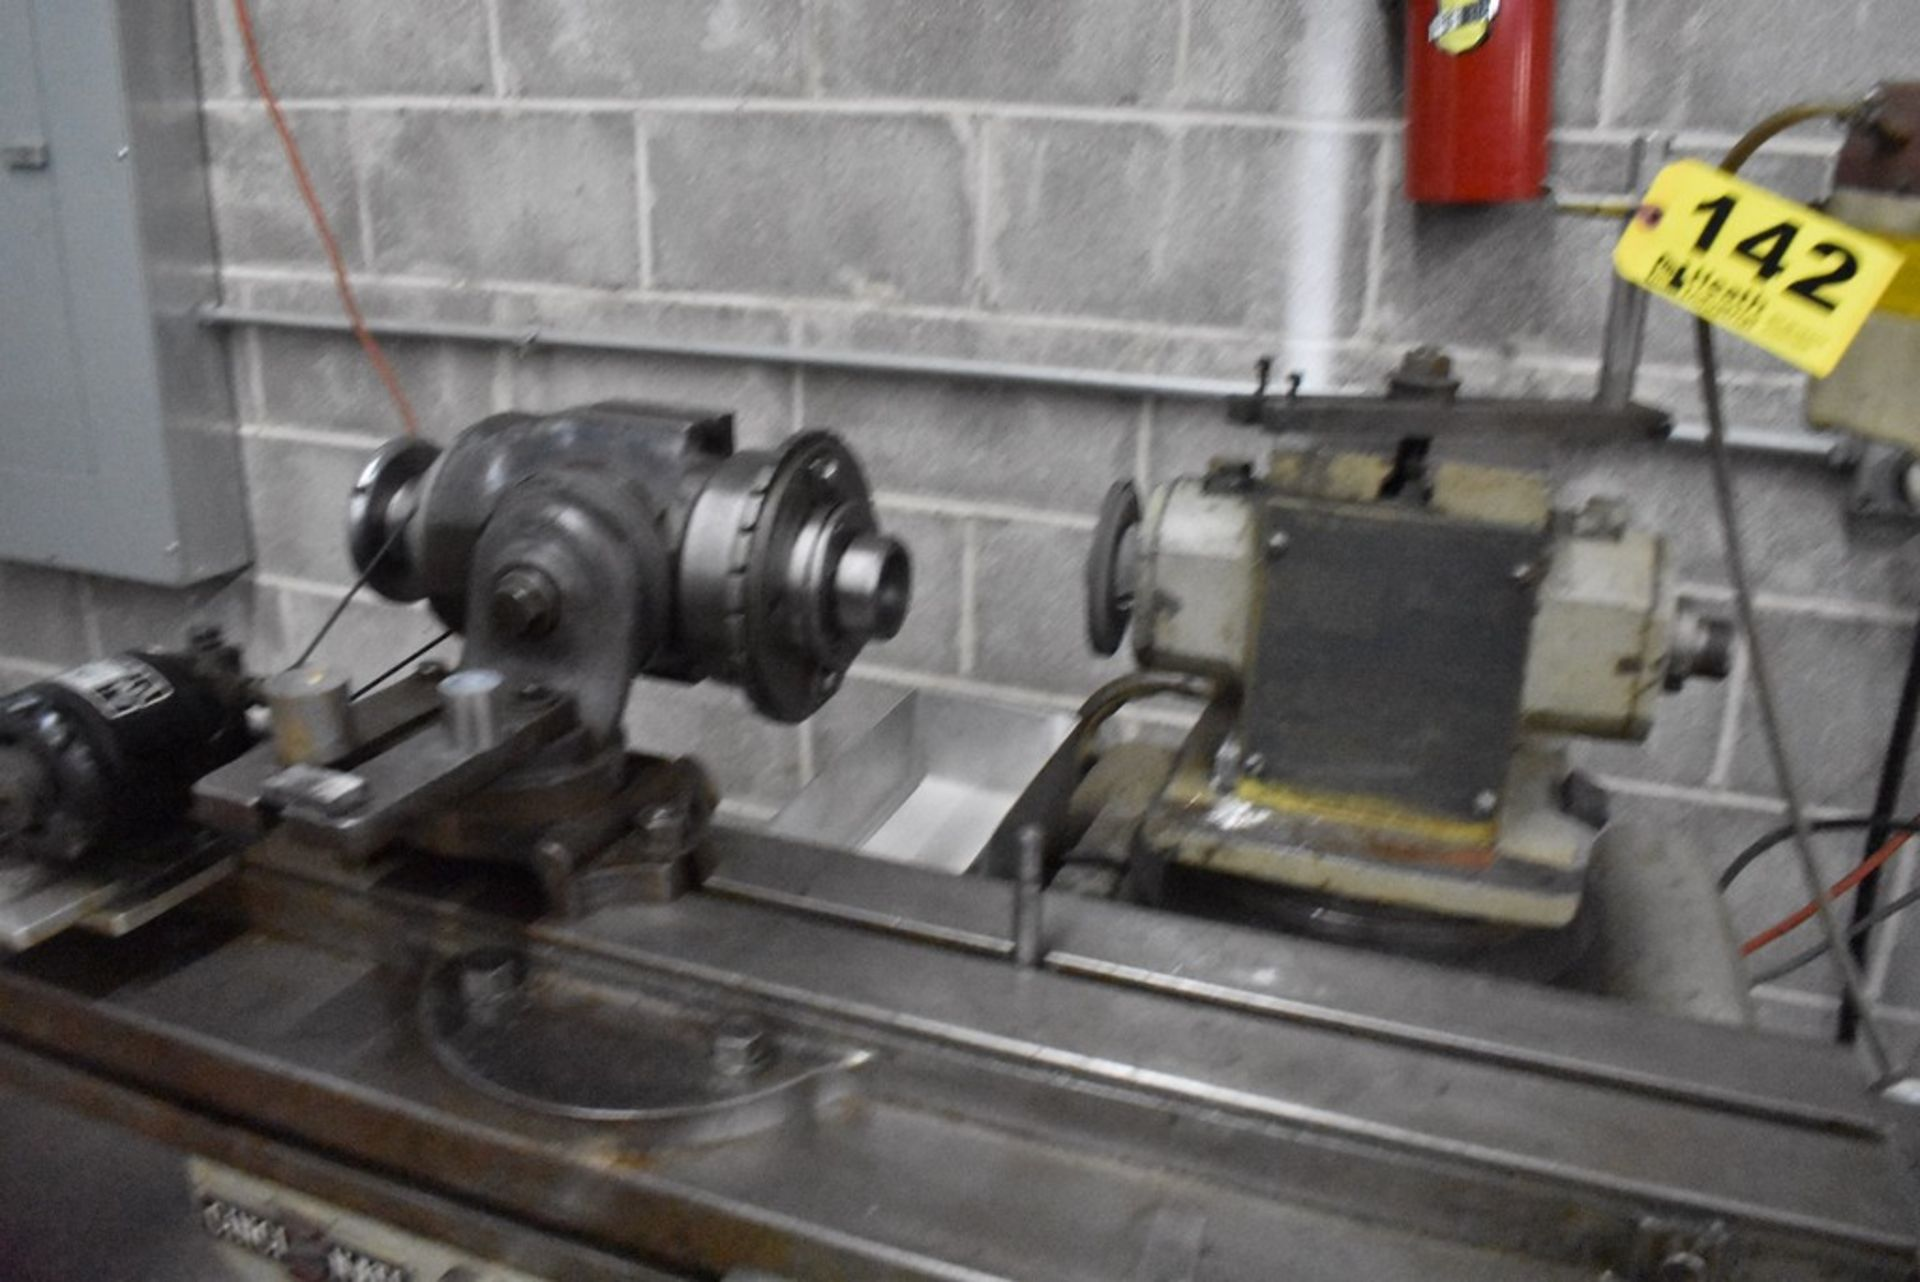 CINCINNATI NO. 2 TOOL AND CUTTER GRINDER, S/N 1D2T1Z-771, WITH MOTORIZED WORK HEAD - Image 4 of 14